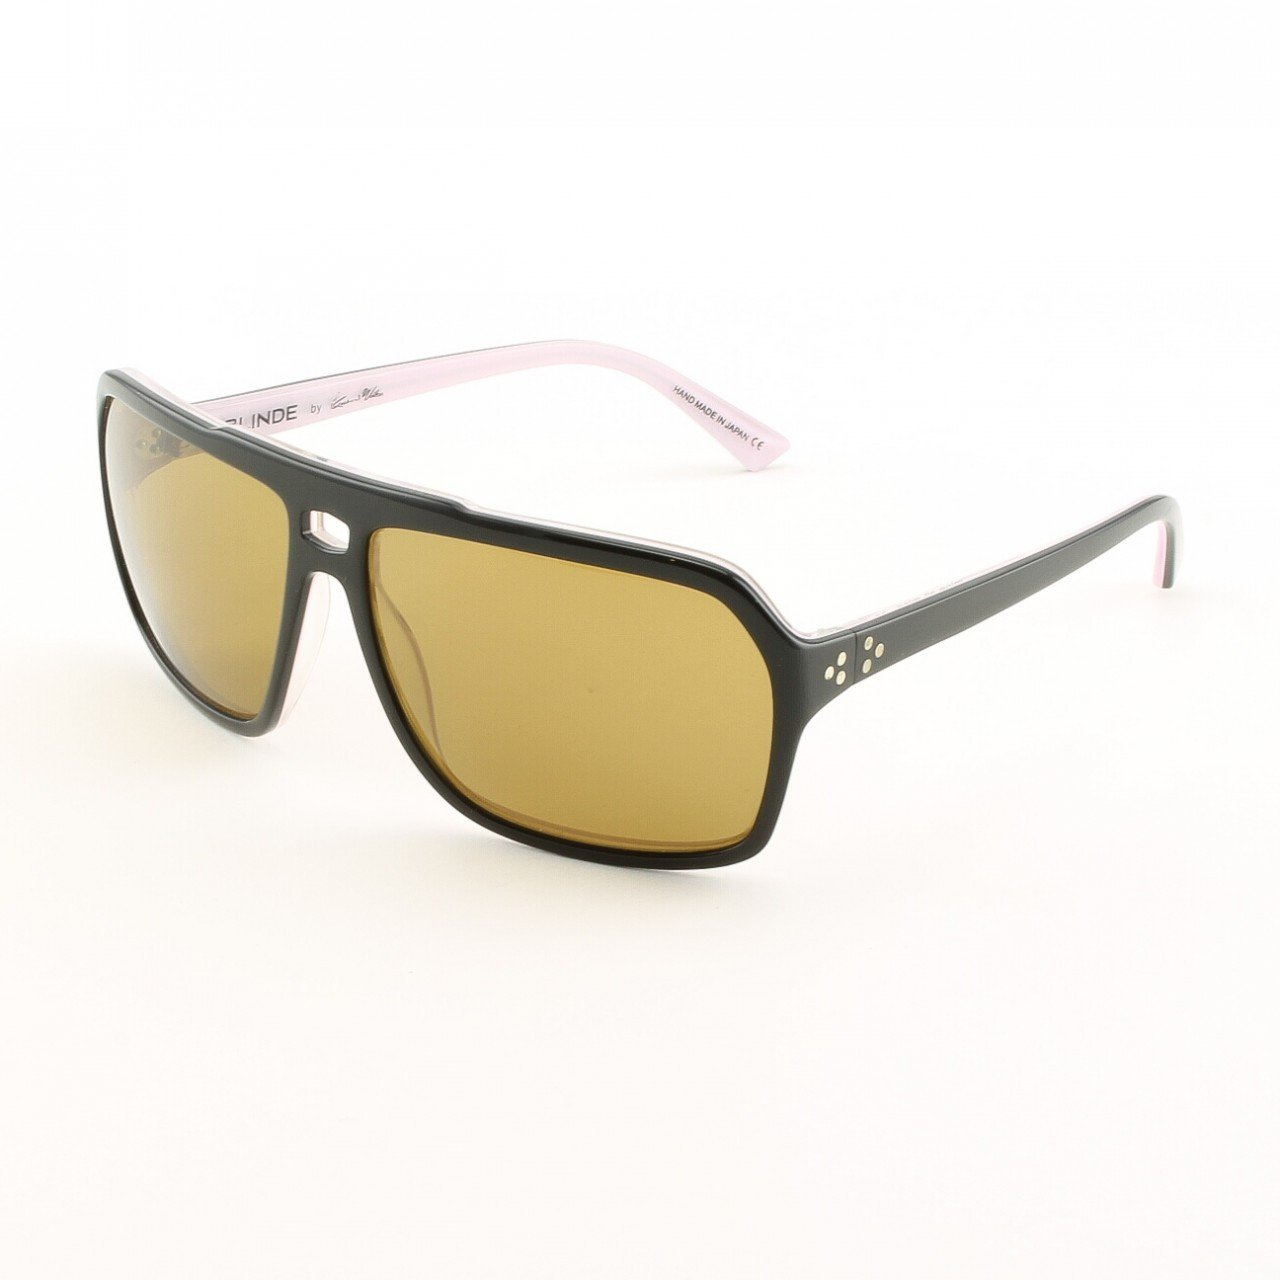 Blinde Mine All Mine Women's Sunglasses Col. Black and Pink with Brown Lenses